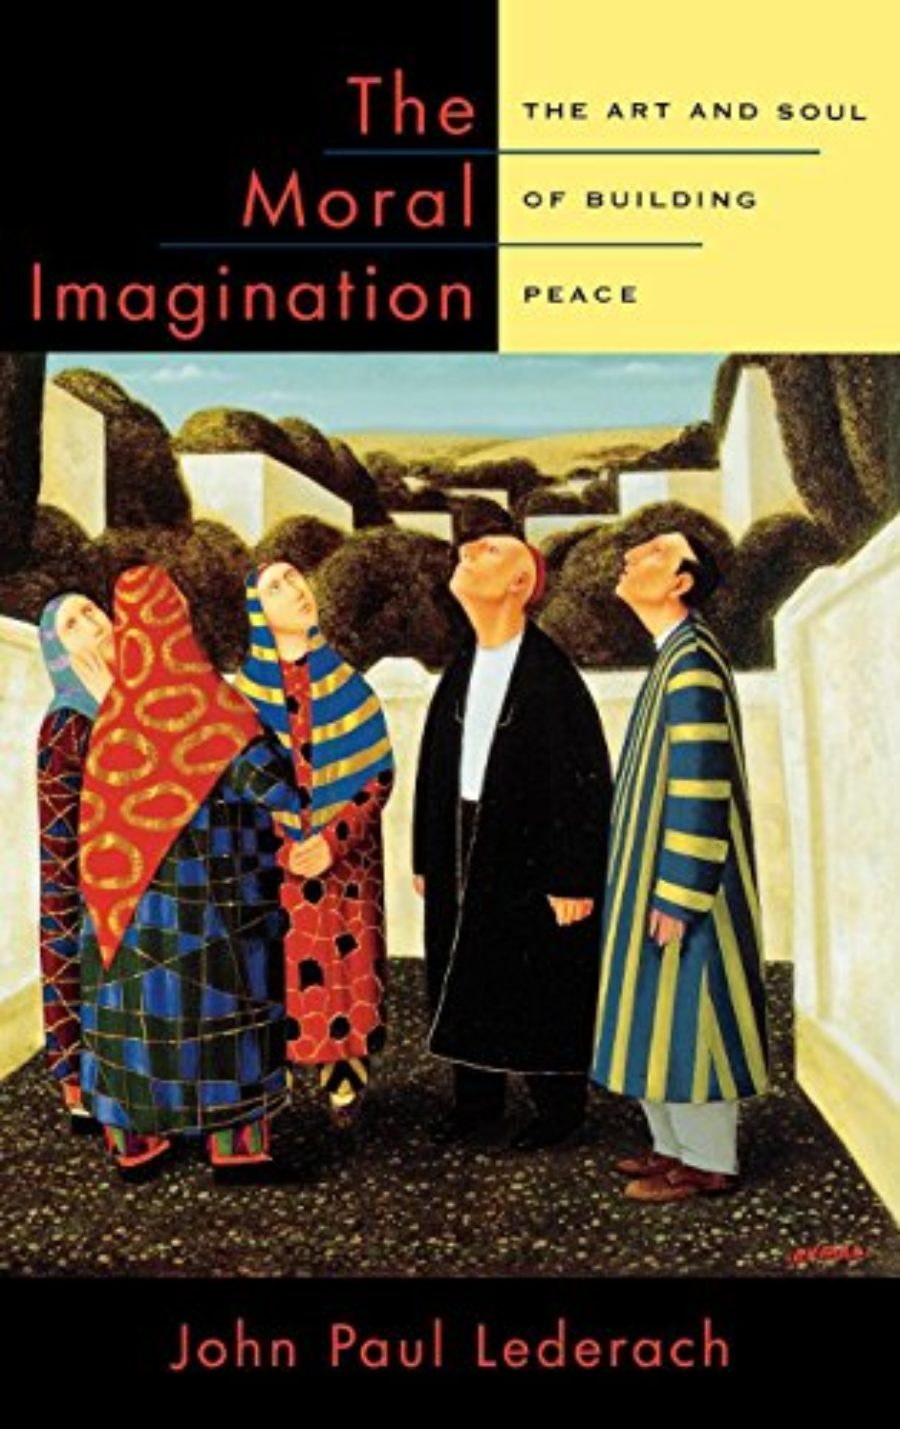 Cover of The Moral Imagination: The Art and Soul of Building Peace